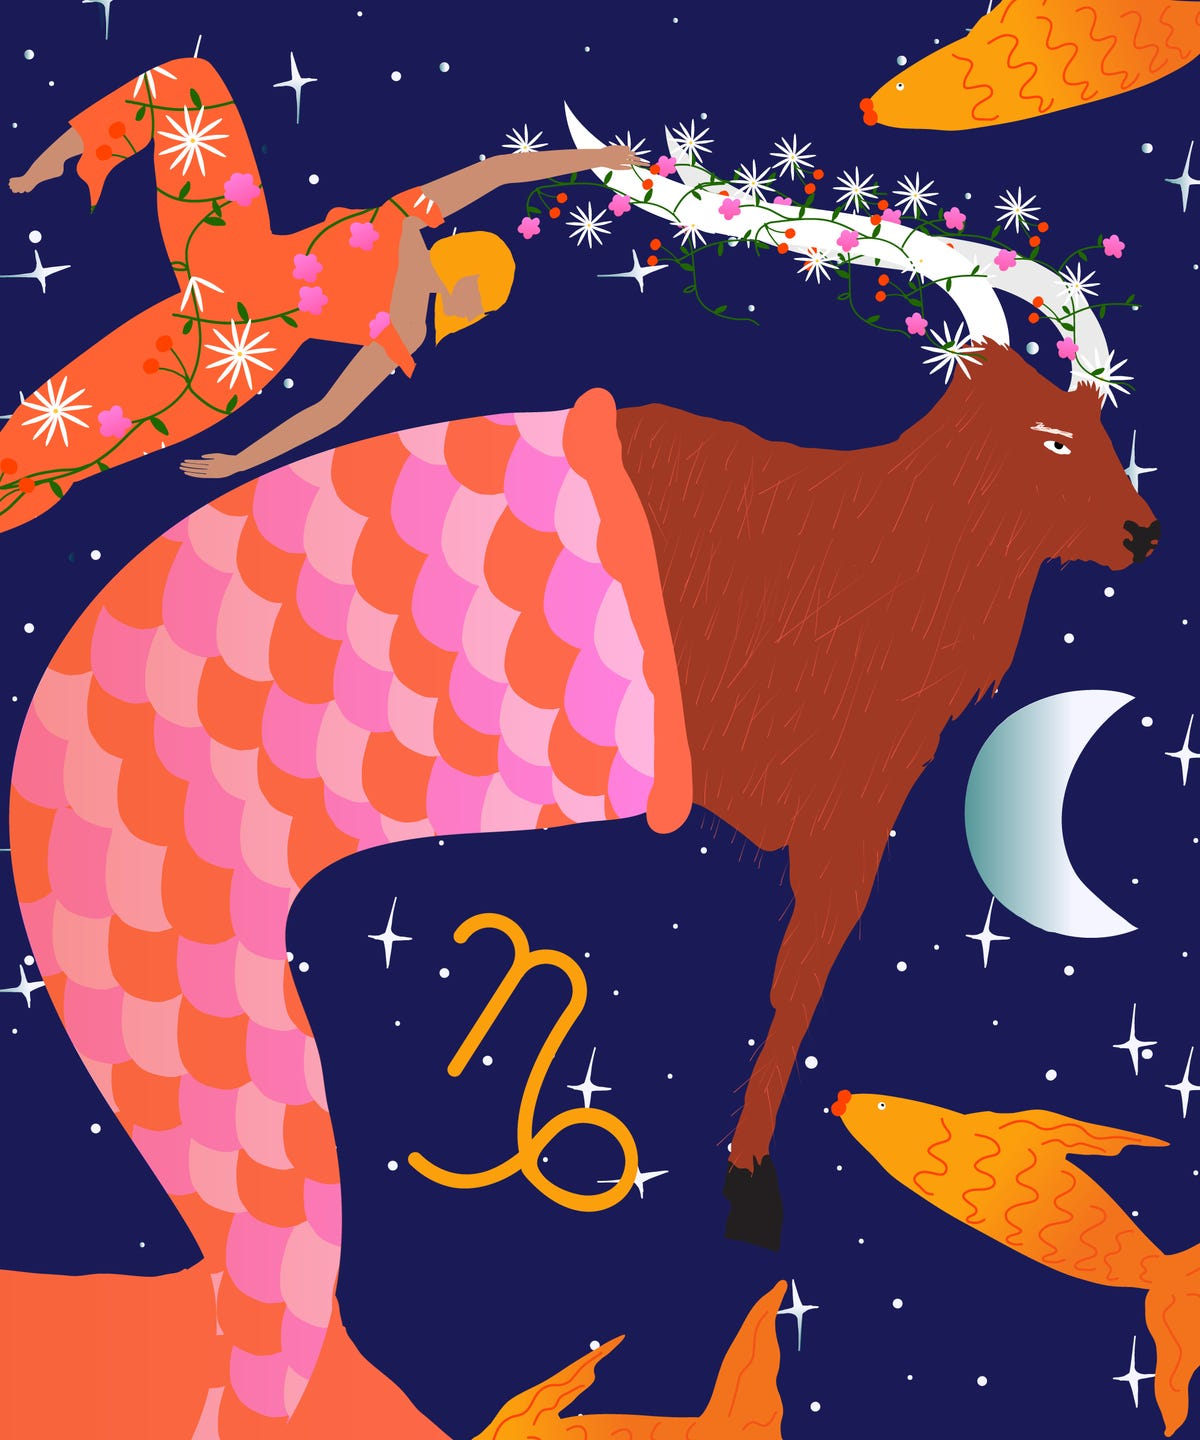 Capricorn 2019 Horoscope Predictions For Love & Career